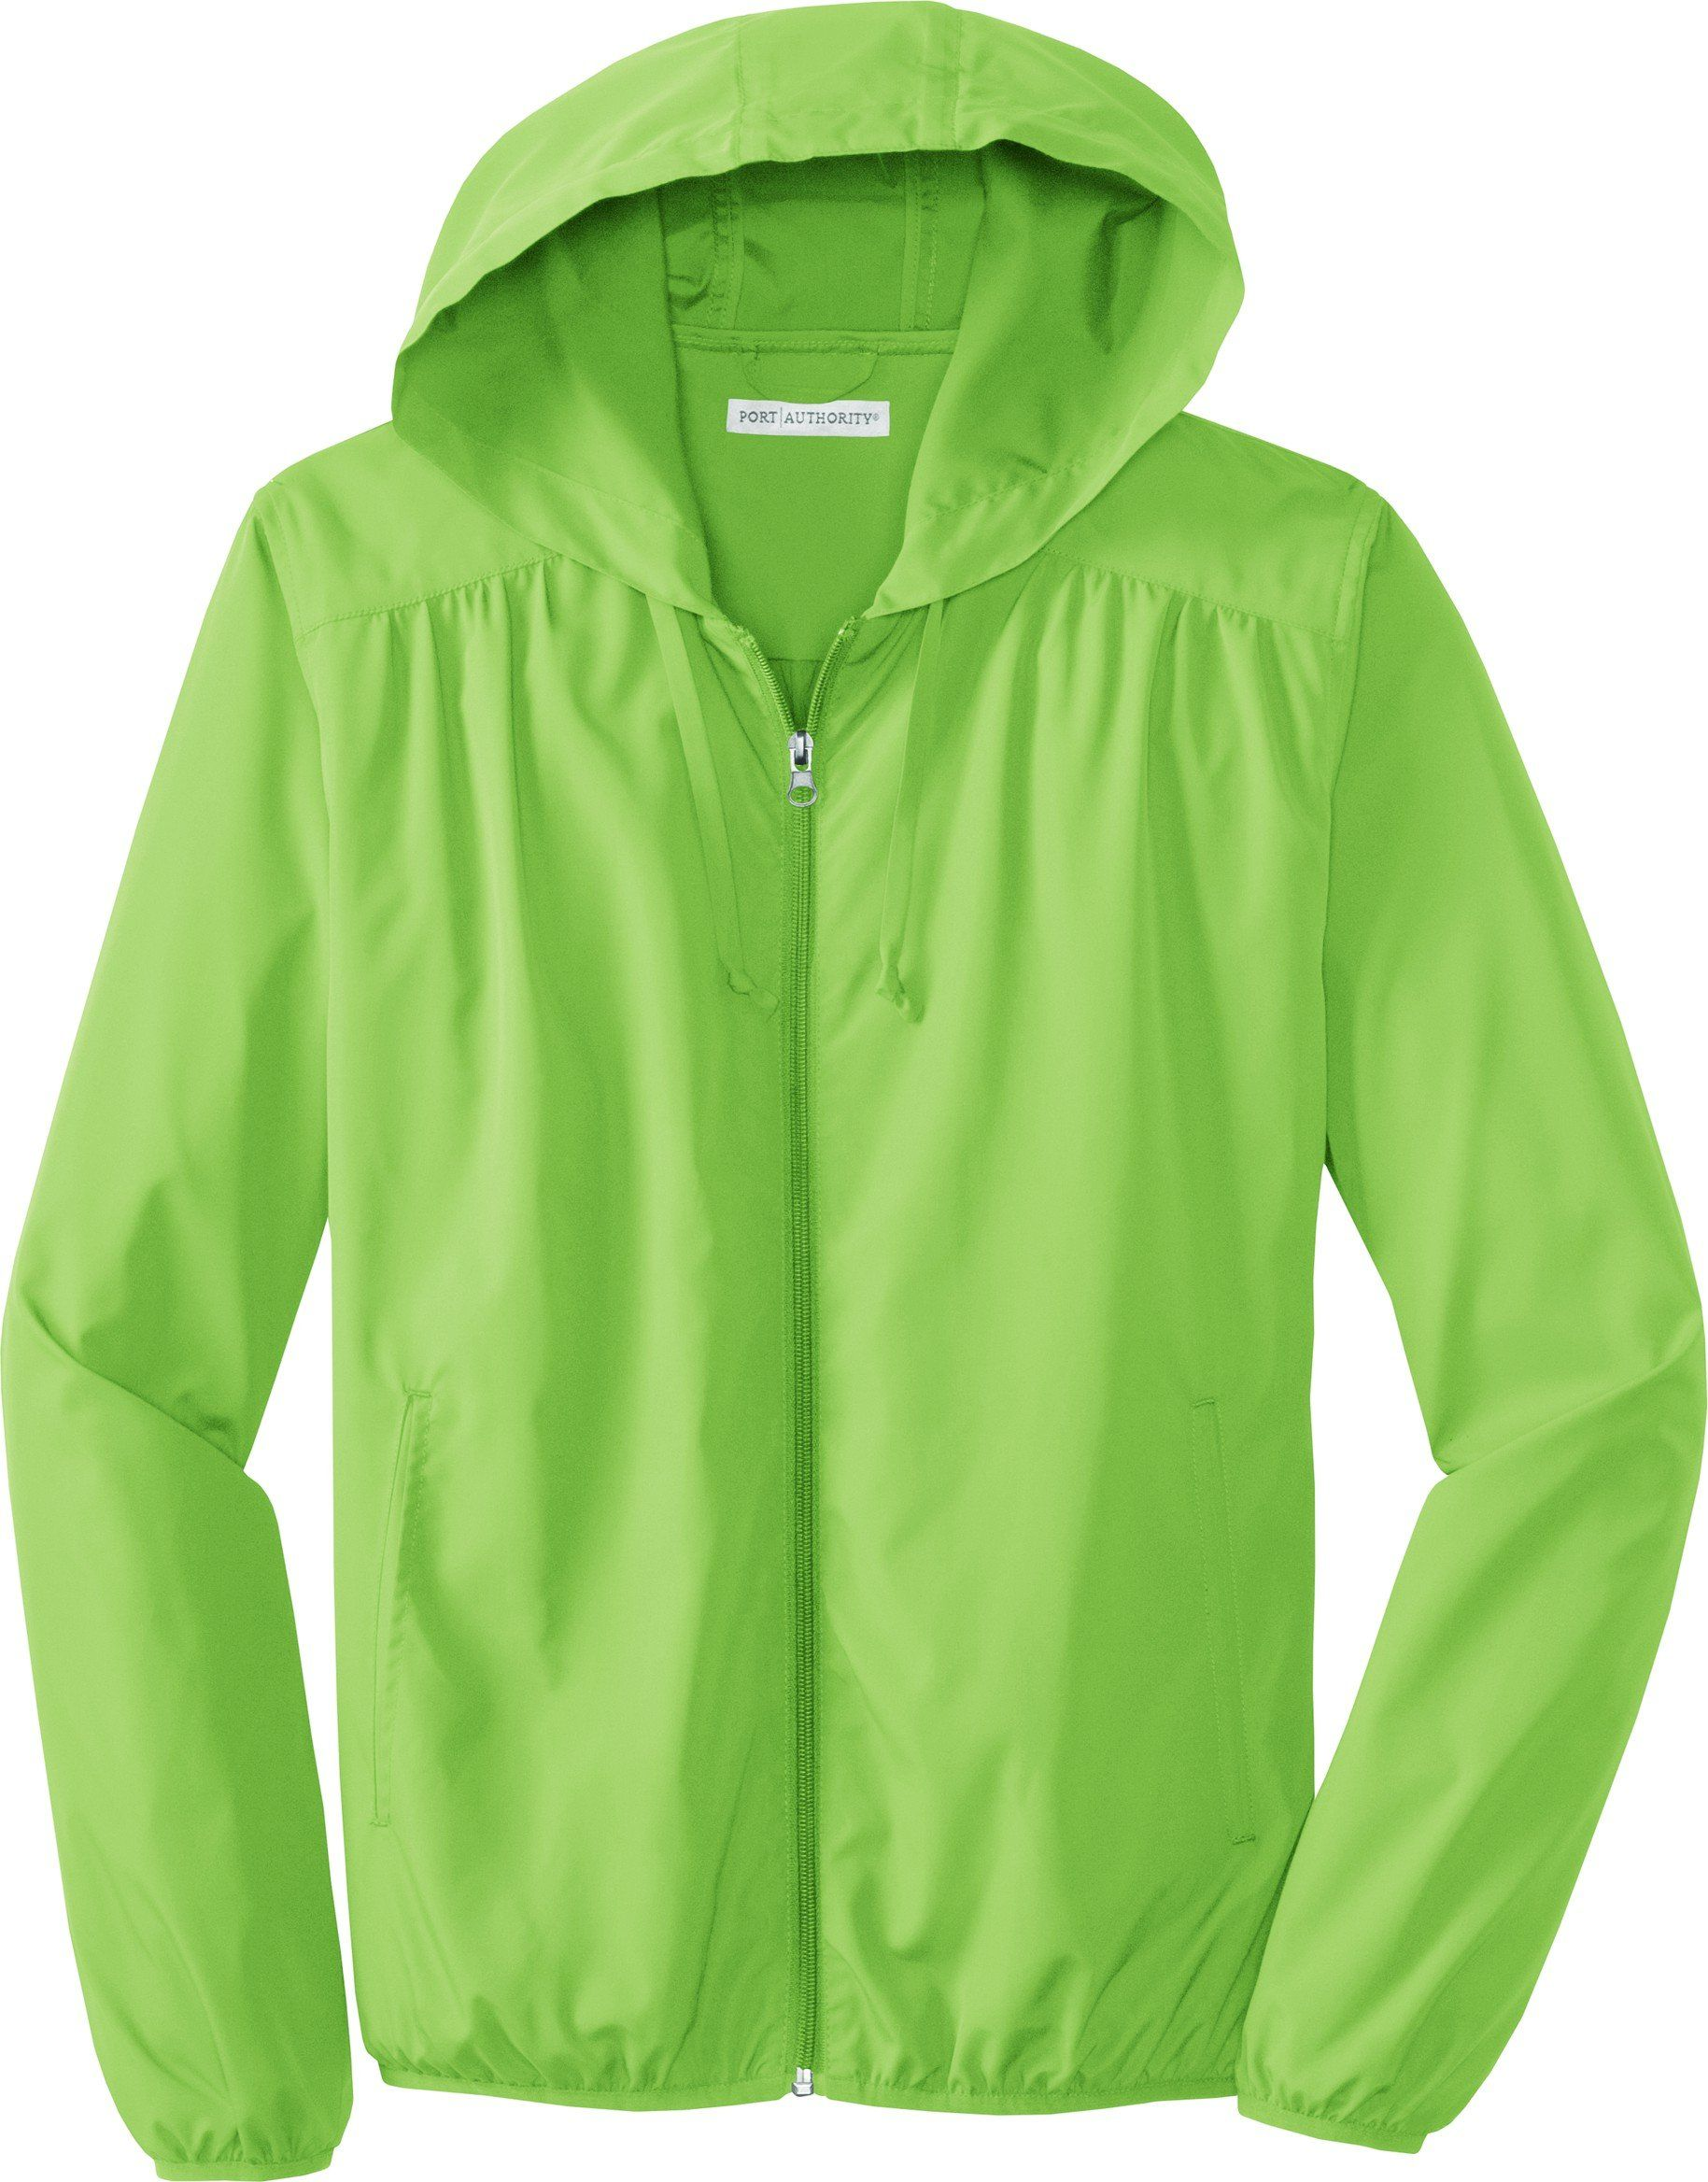 b4f969be68 Port Authority - Ladies Hooded Essential Lightweight Windbreaker Jacket.  L305 at Amazon Women s Clothing store  Athletic Warm Up And Track Jackets